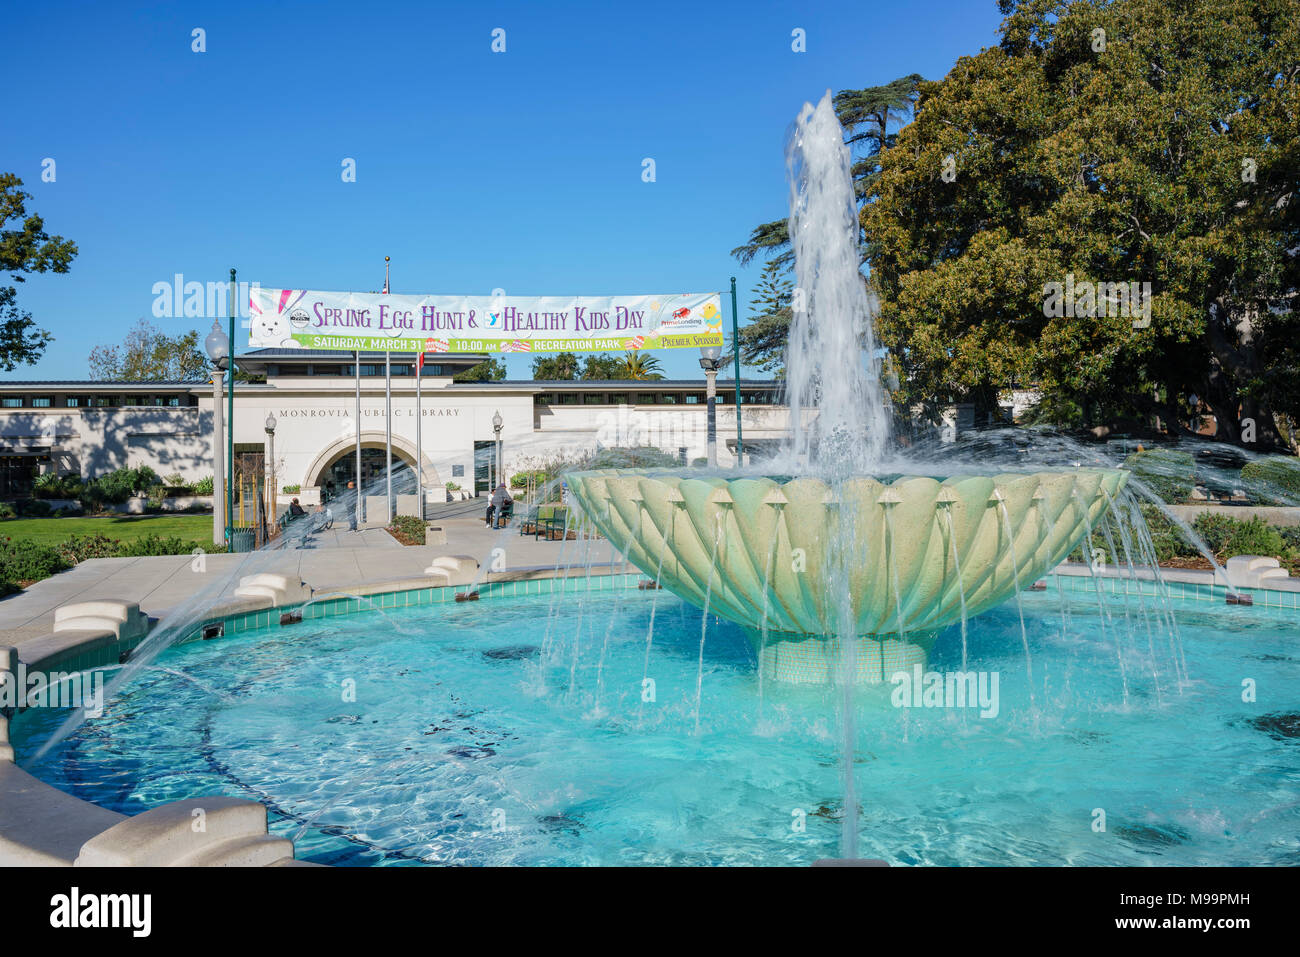 Monrovia, MAR 19: Exterior view of the Monrovia Library on MAR 19, 2018 at Los Angeles County, California - Stock Image